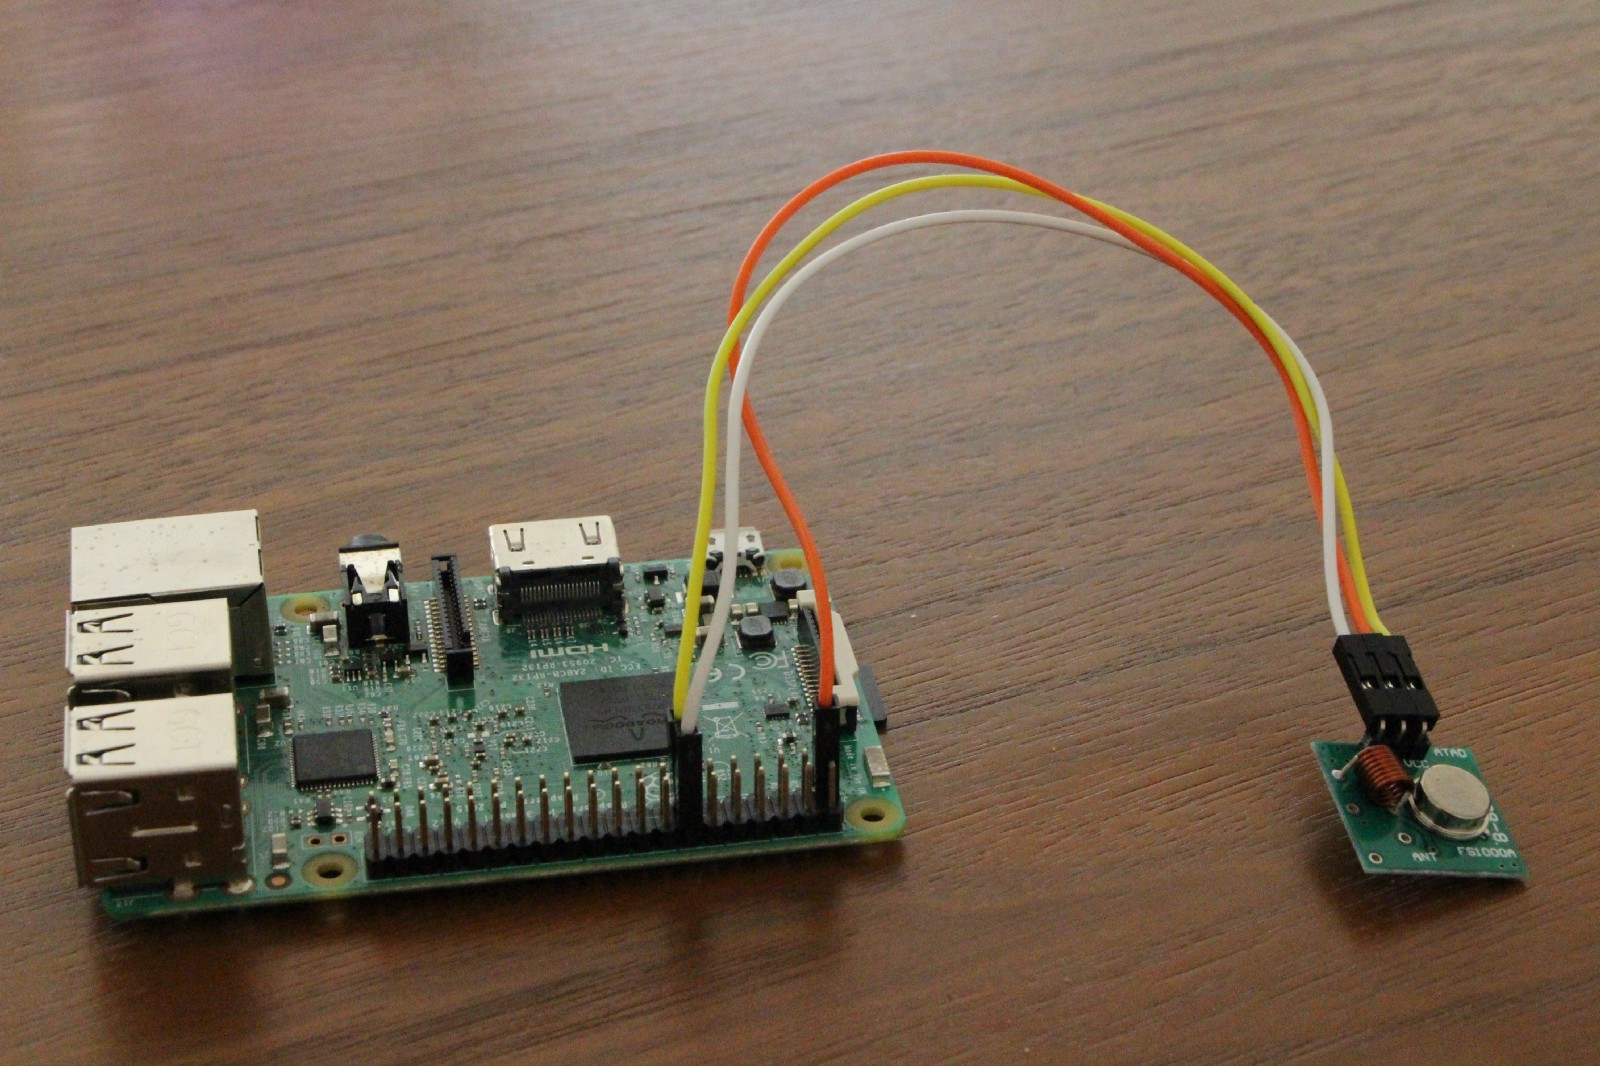 Voice Controlled Lights With A Raspberry Pi And Snips Wiringpi Open Source Software Setup